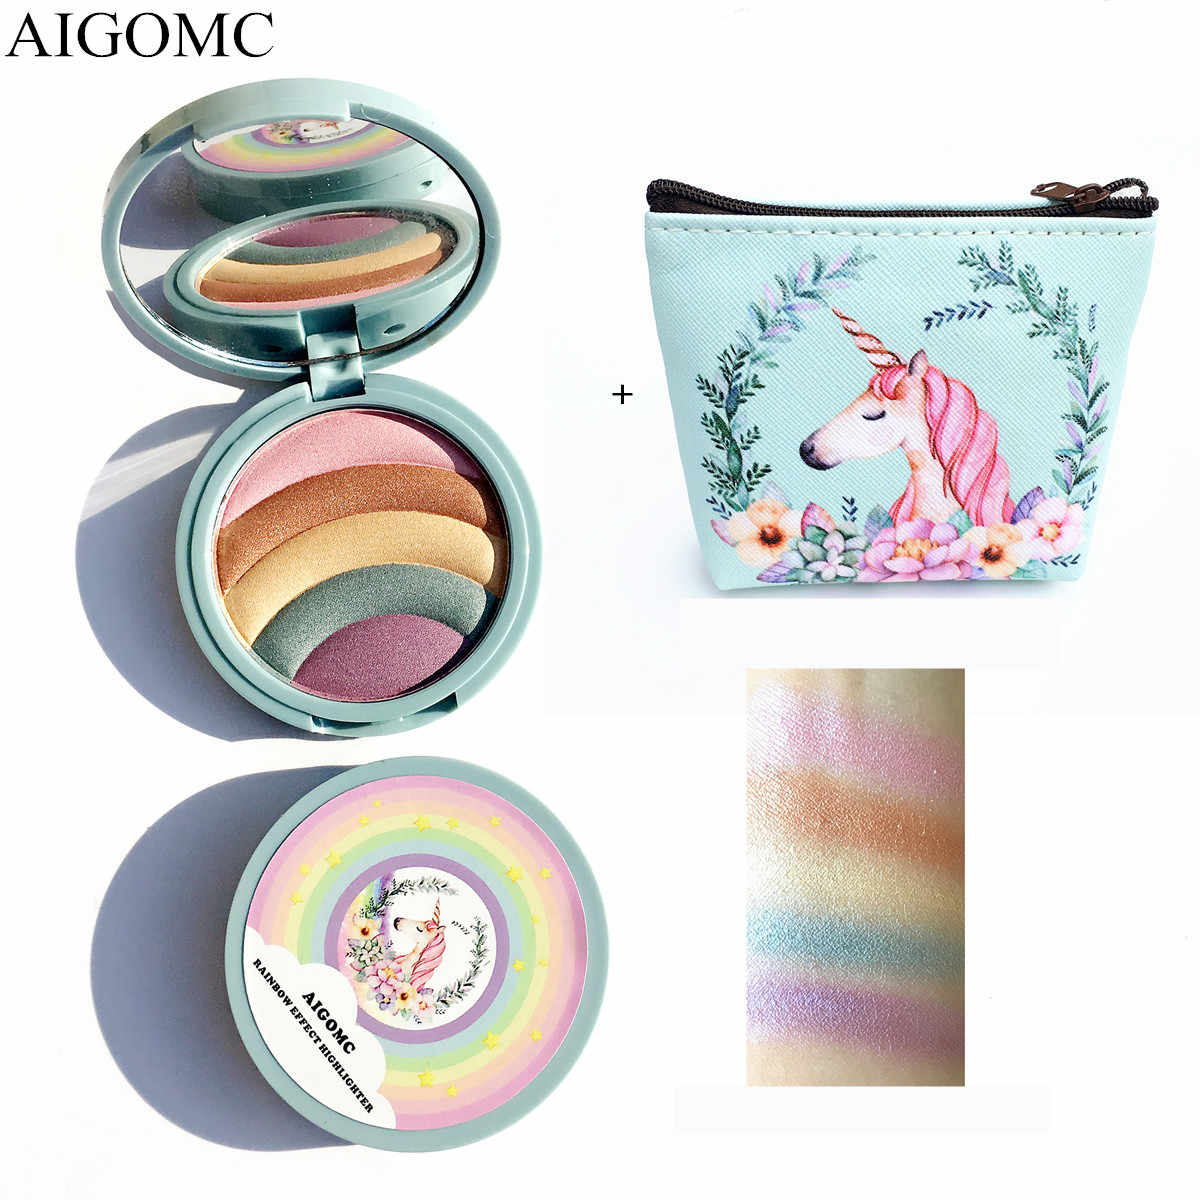 AIGOMC Unicorn Glow Kit Highlighter 5 Colors Highlighter Palette Face Contour Rainbow Highlighter With cosmetic bag Makeup Set